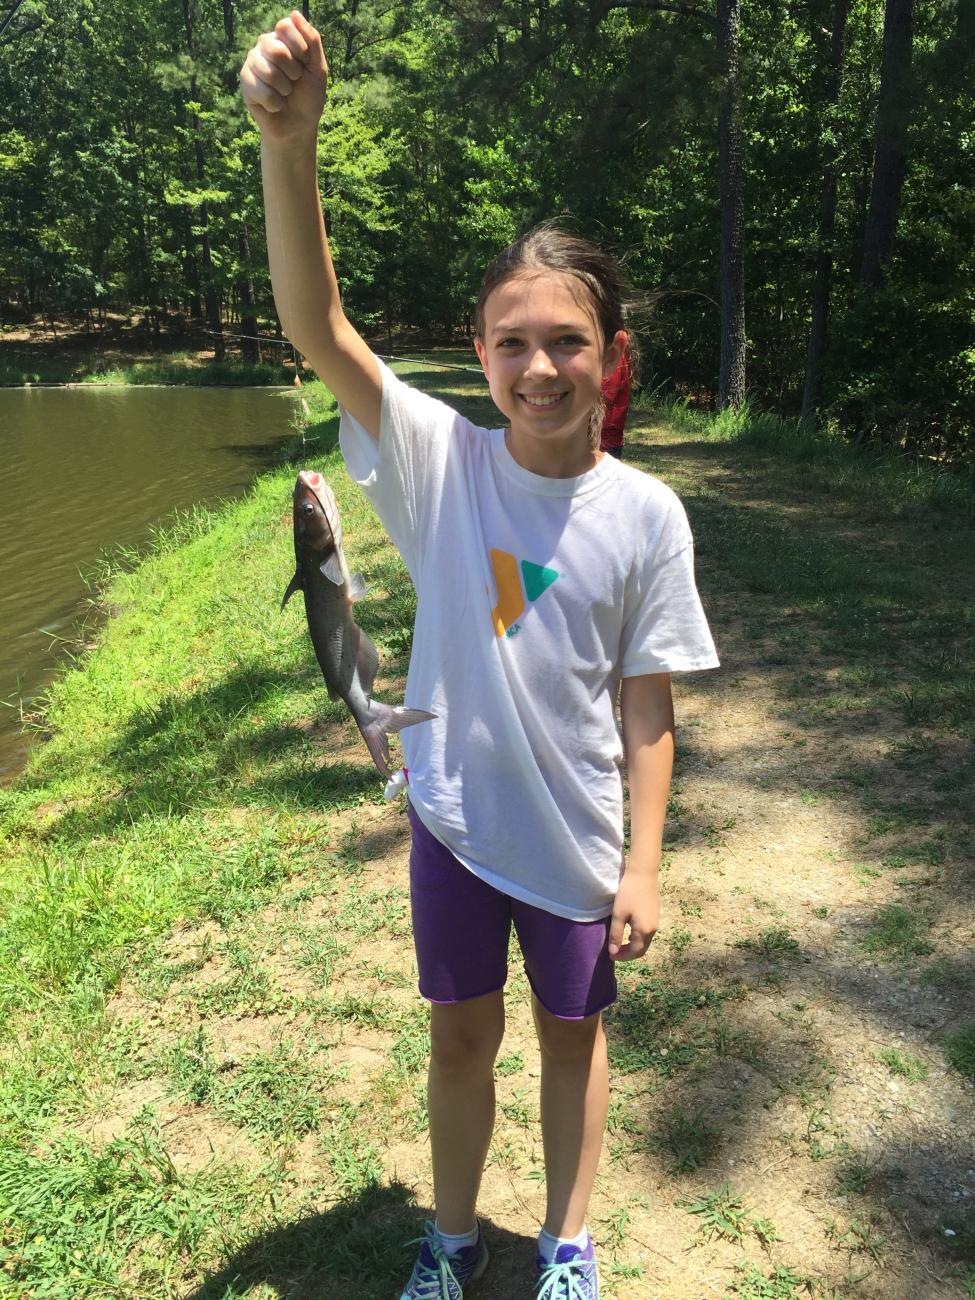 A photo of a female camper holding a catfish she just caught